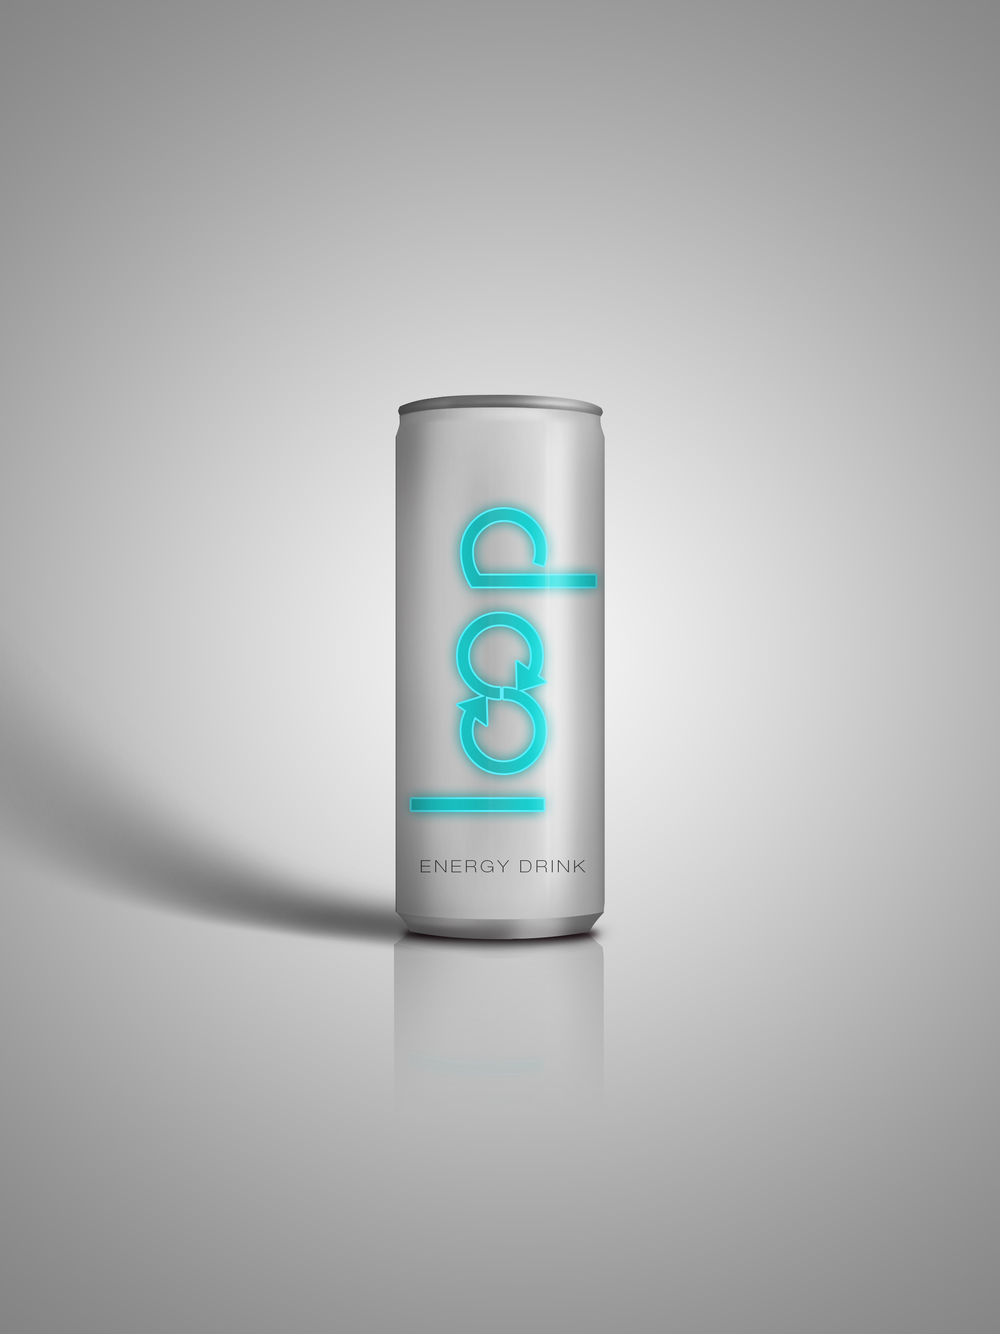 Loop - energy drink concept